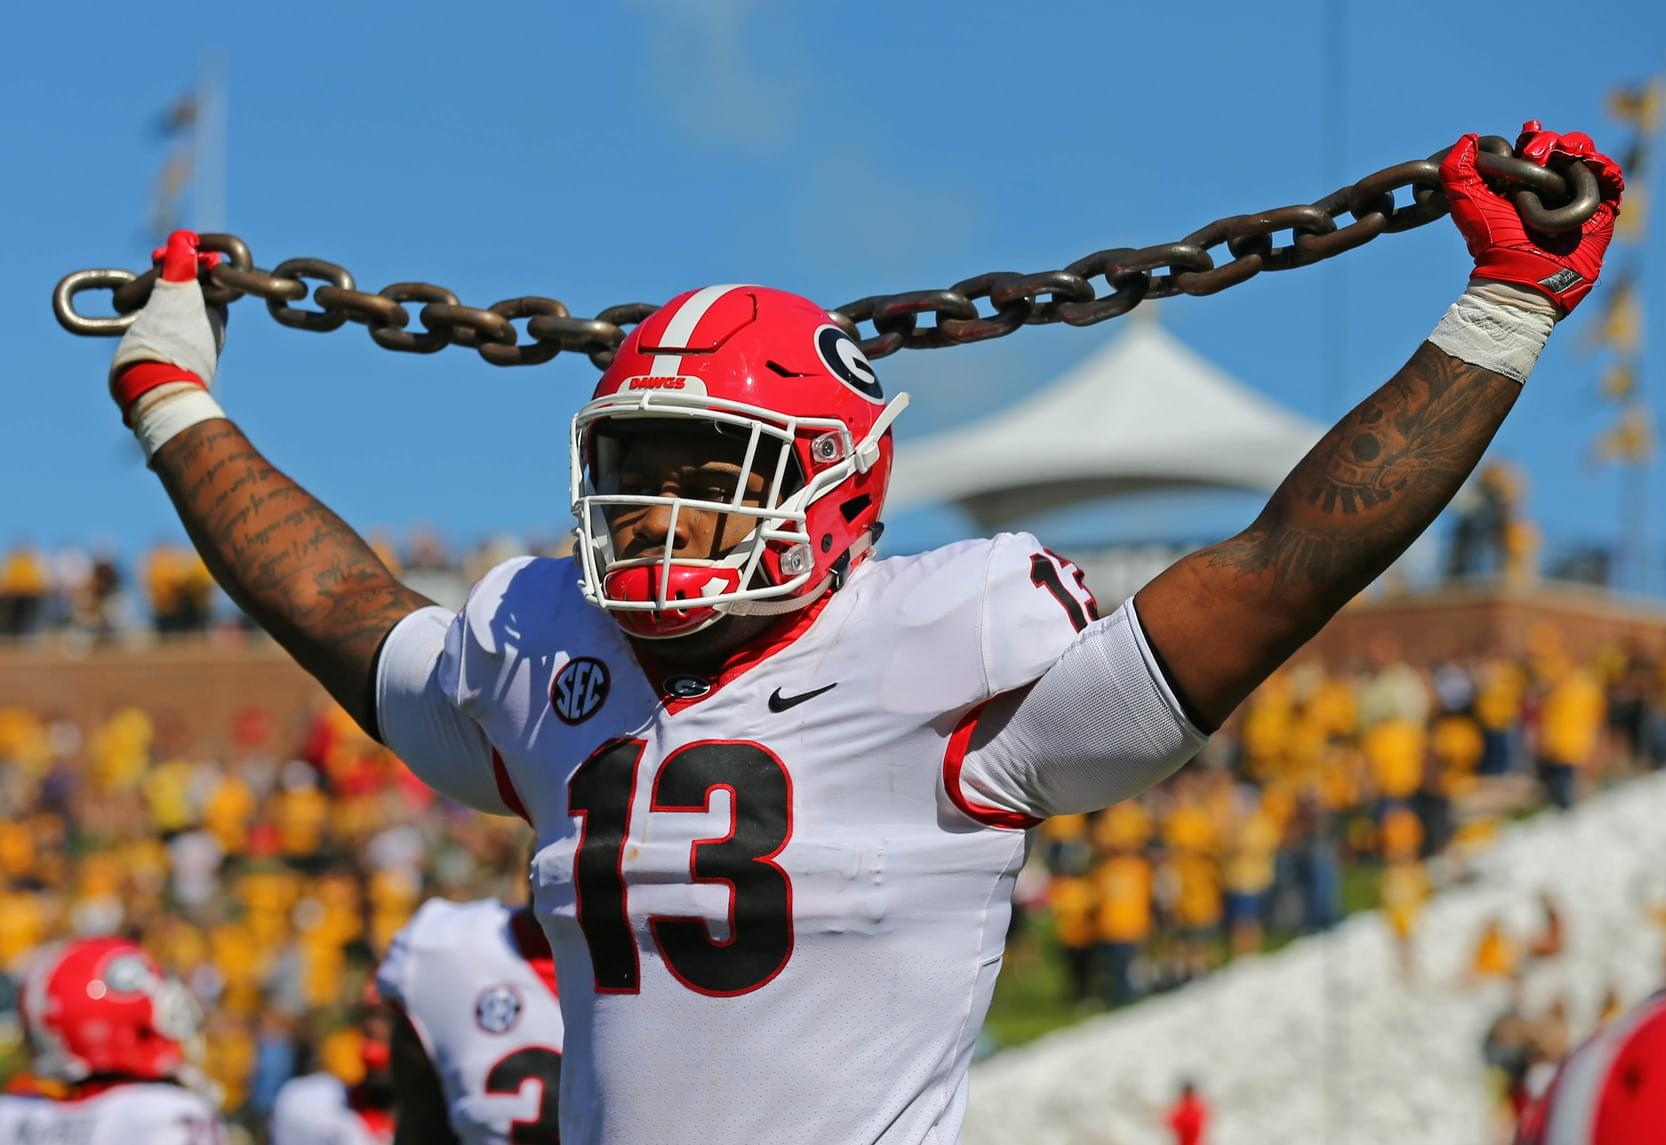 LAMM AT LARGE: Georgia Bulldogs need to watch out